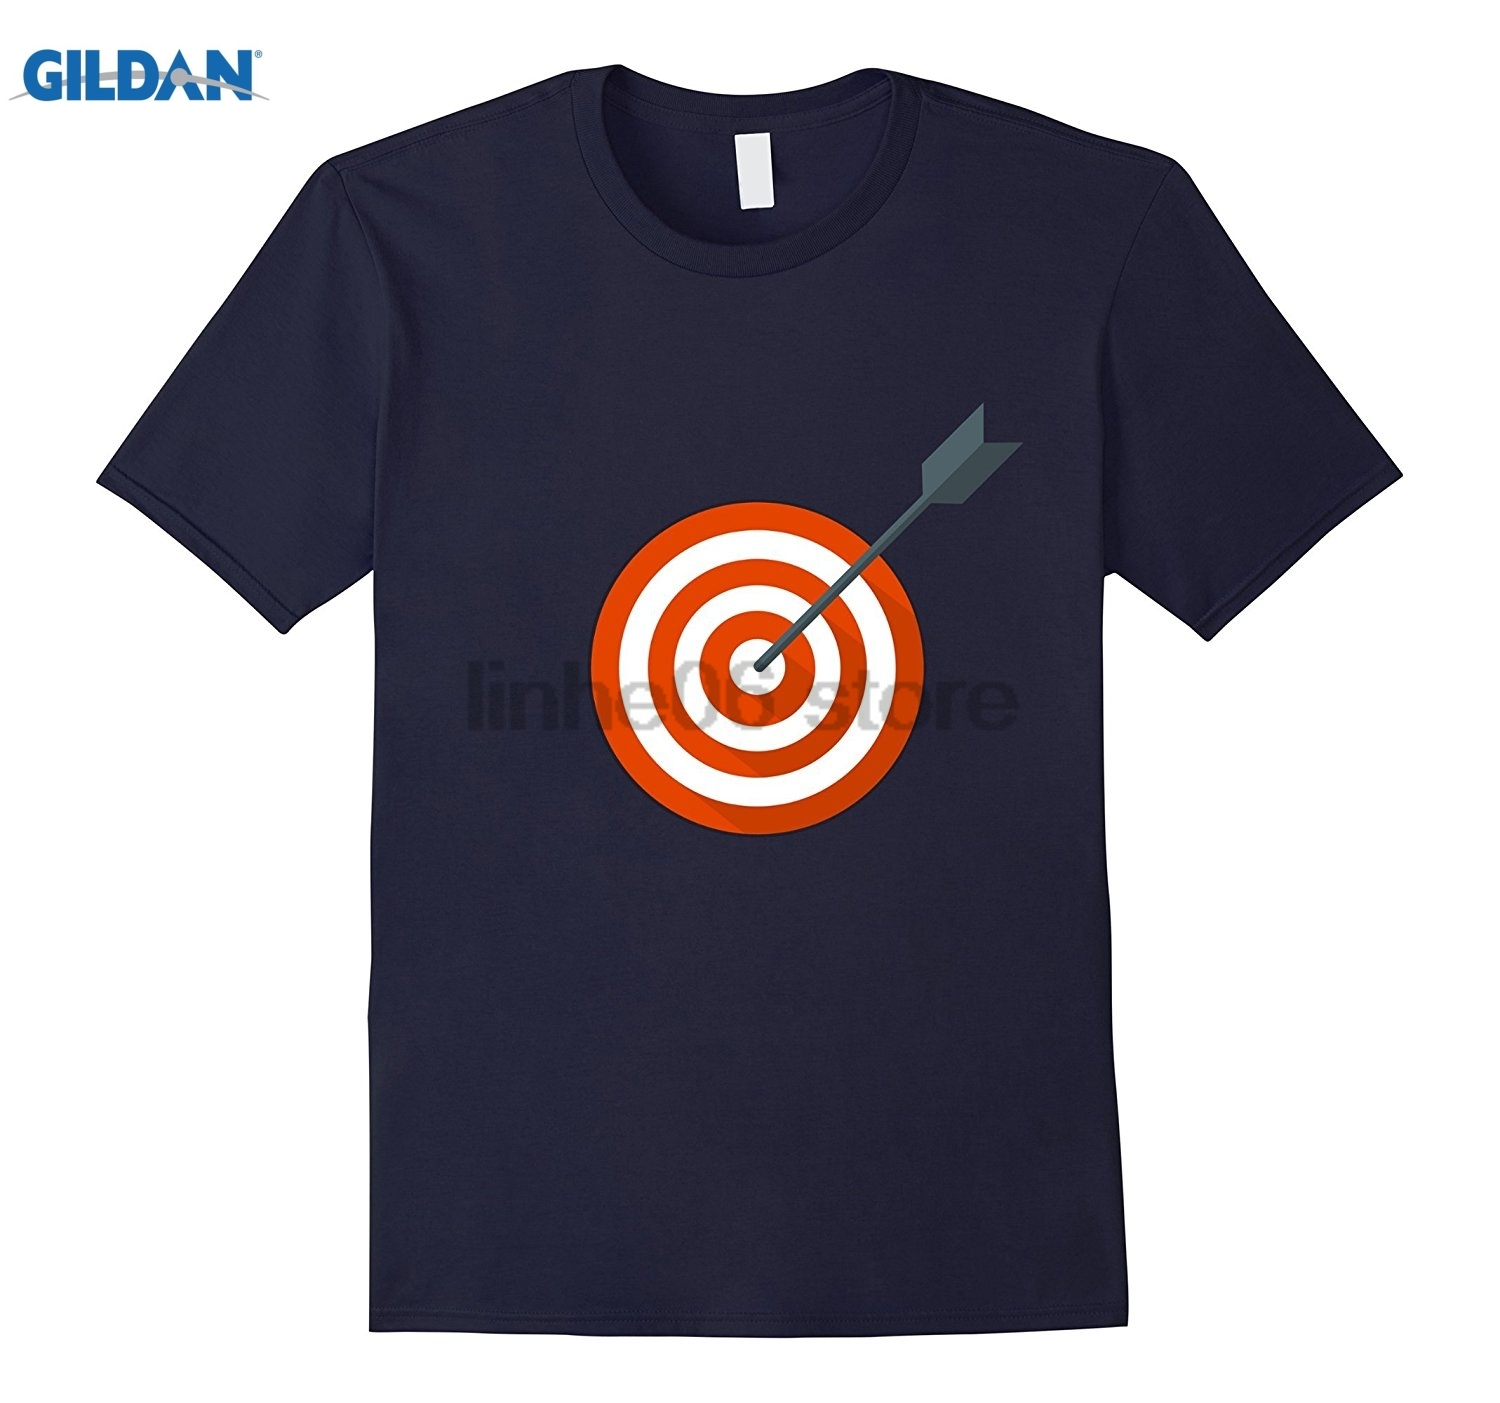 GILDAN Archery Arrow Target Bullseye T-Shirt sunglasses women T-shirt